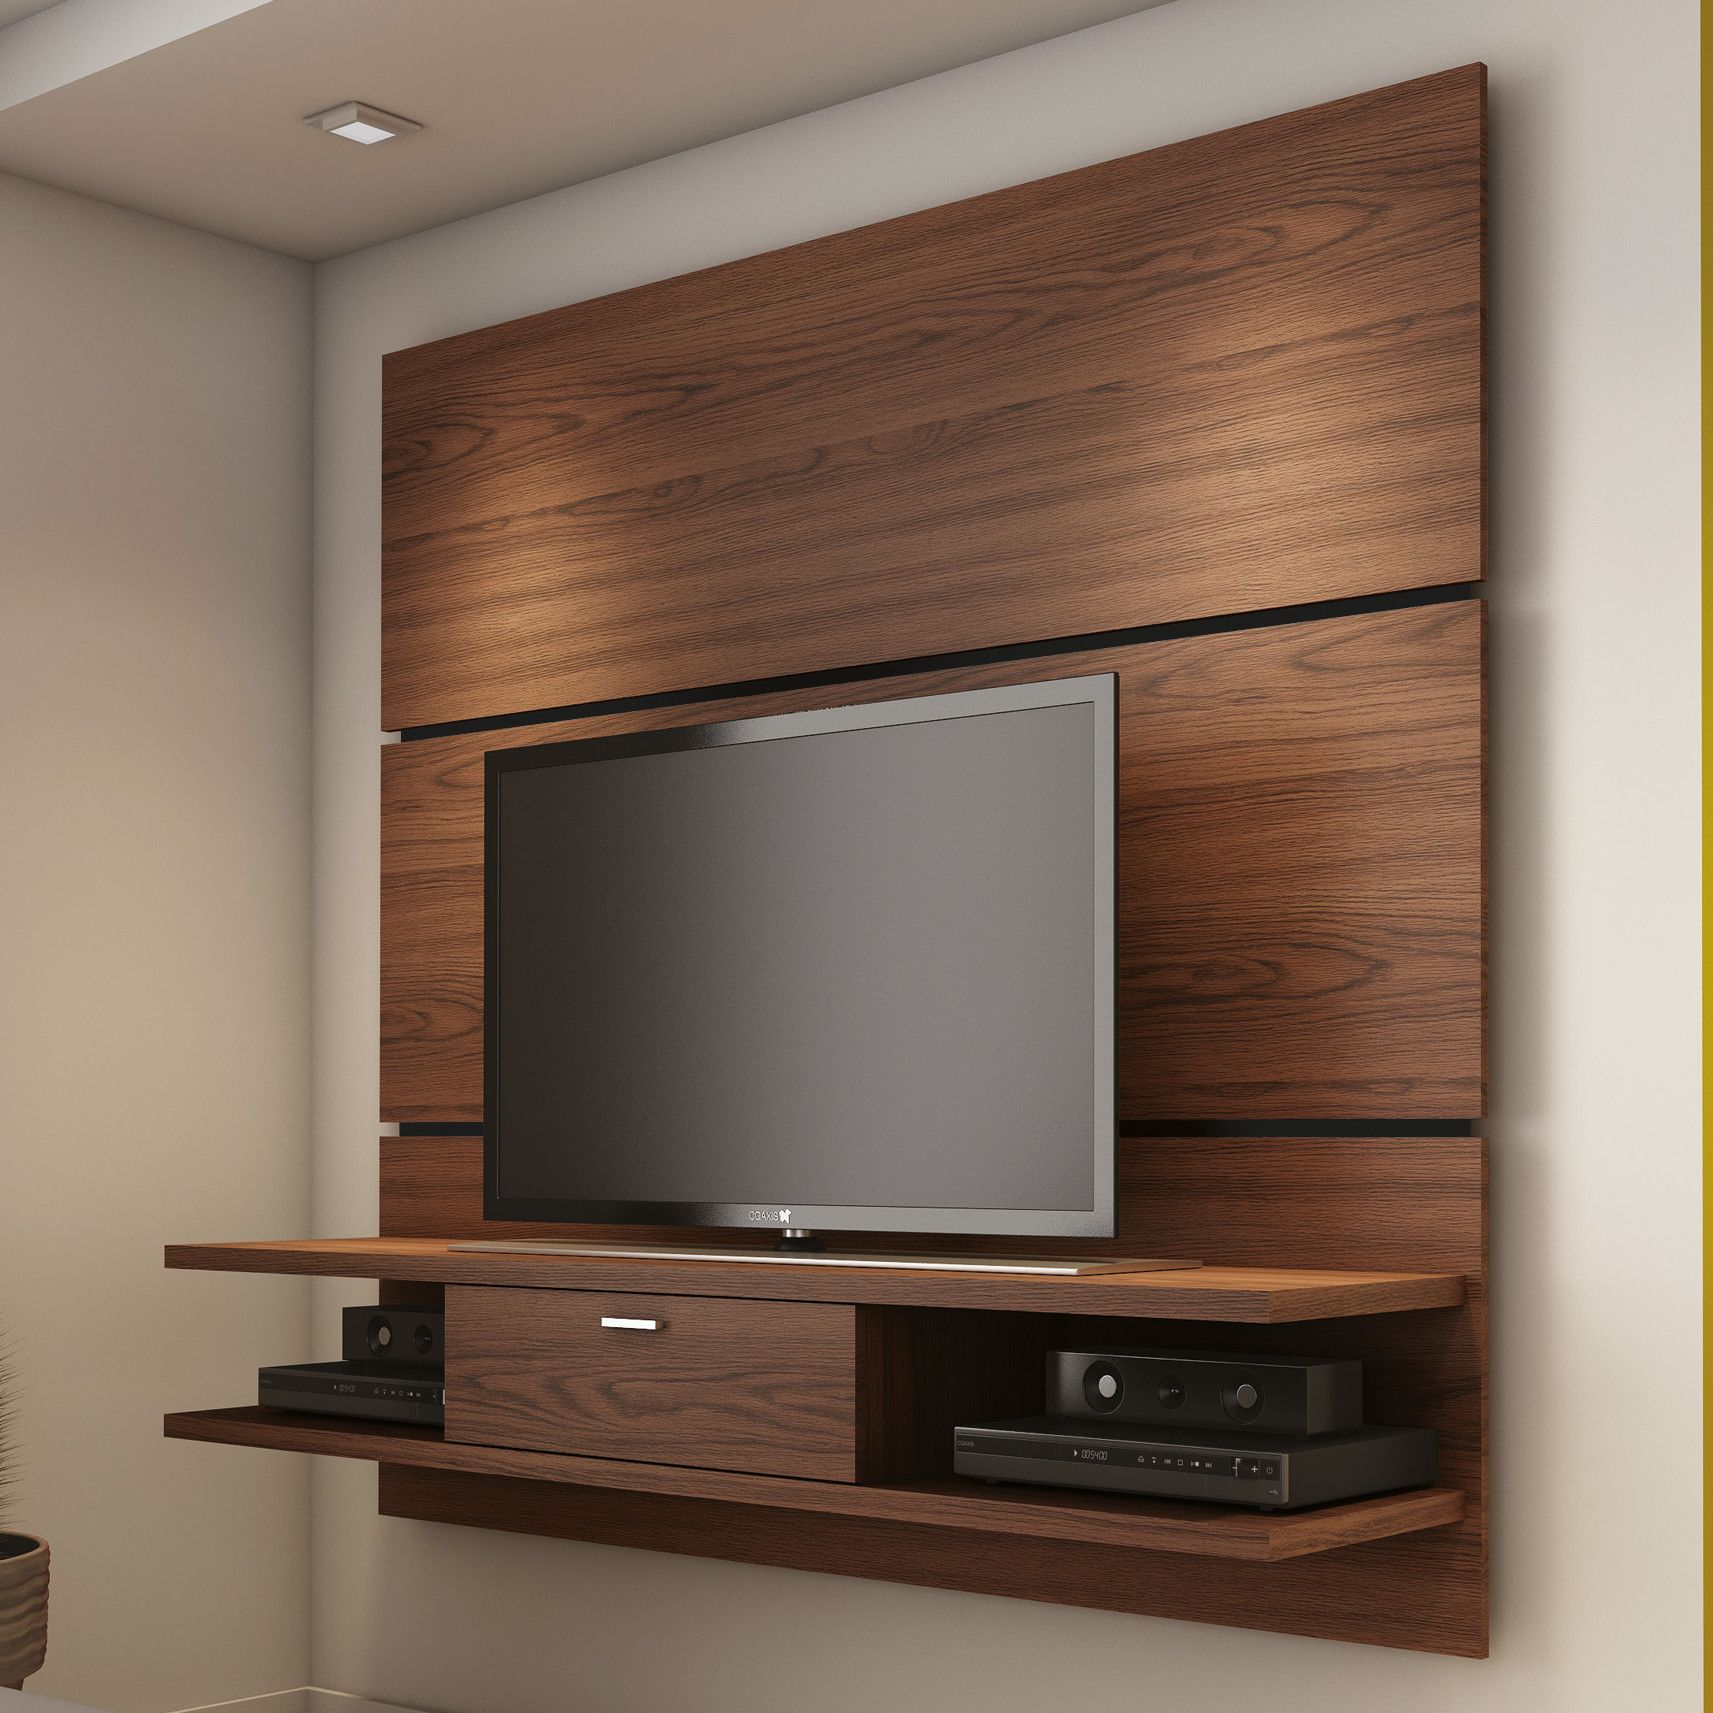 Enhance The Look Of Your Living Space With Manhattan Comfort Metropolitan Entertainment Center Made Quality Wood This Is Both